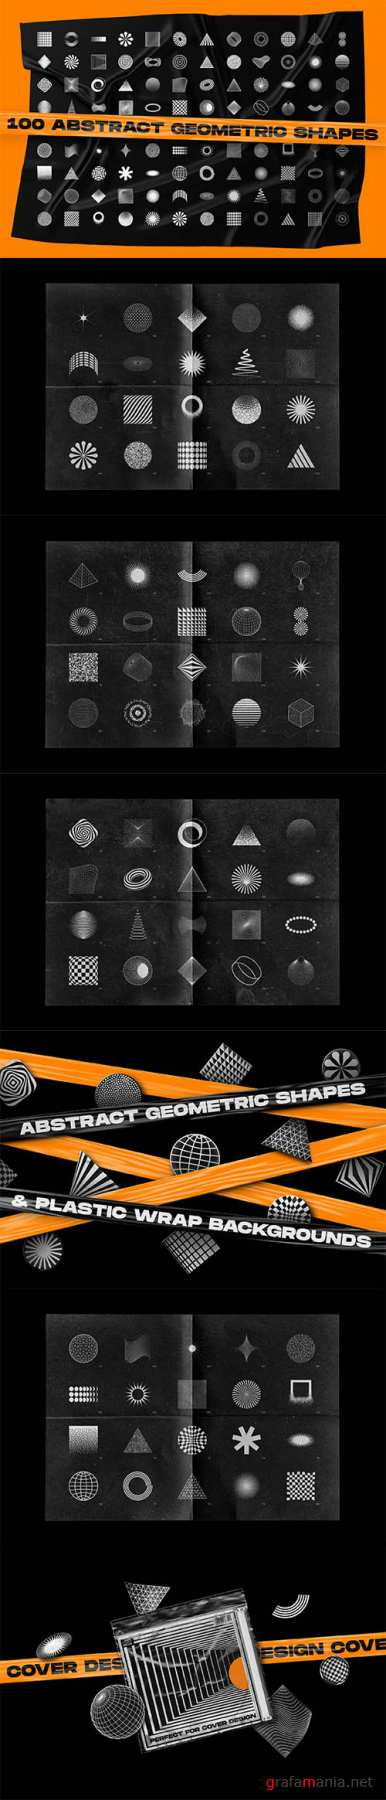 Abstract Shapes & Backgrounds